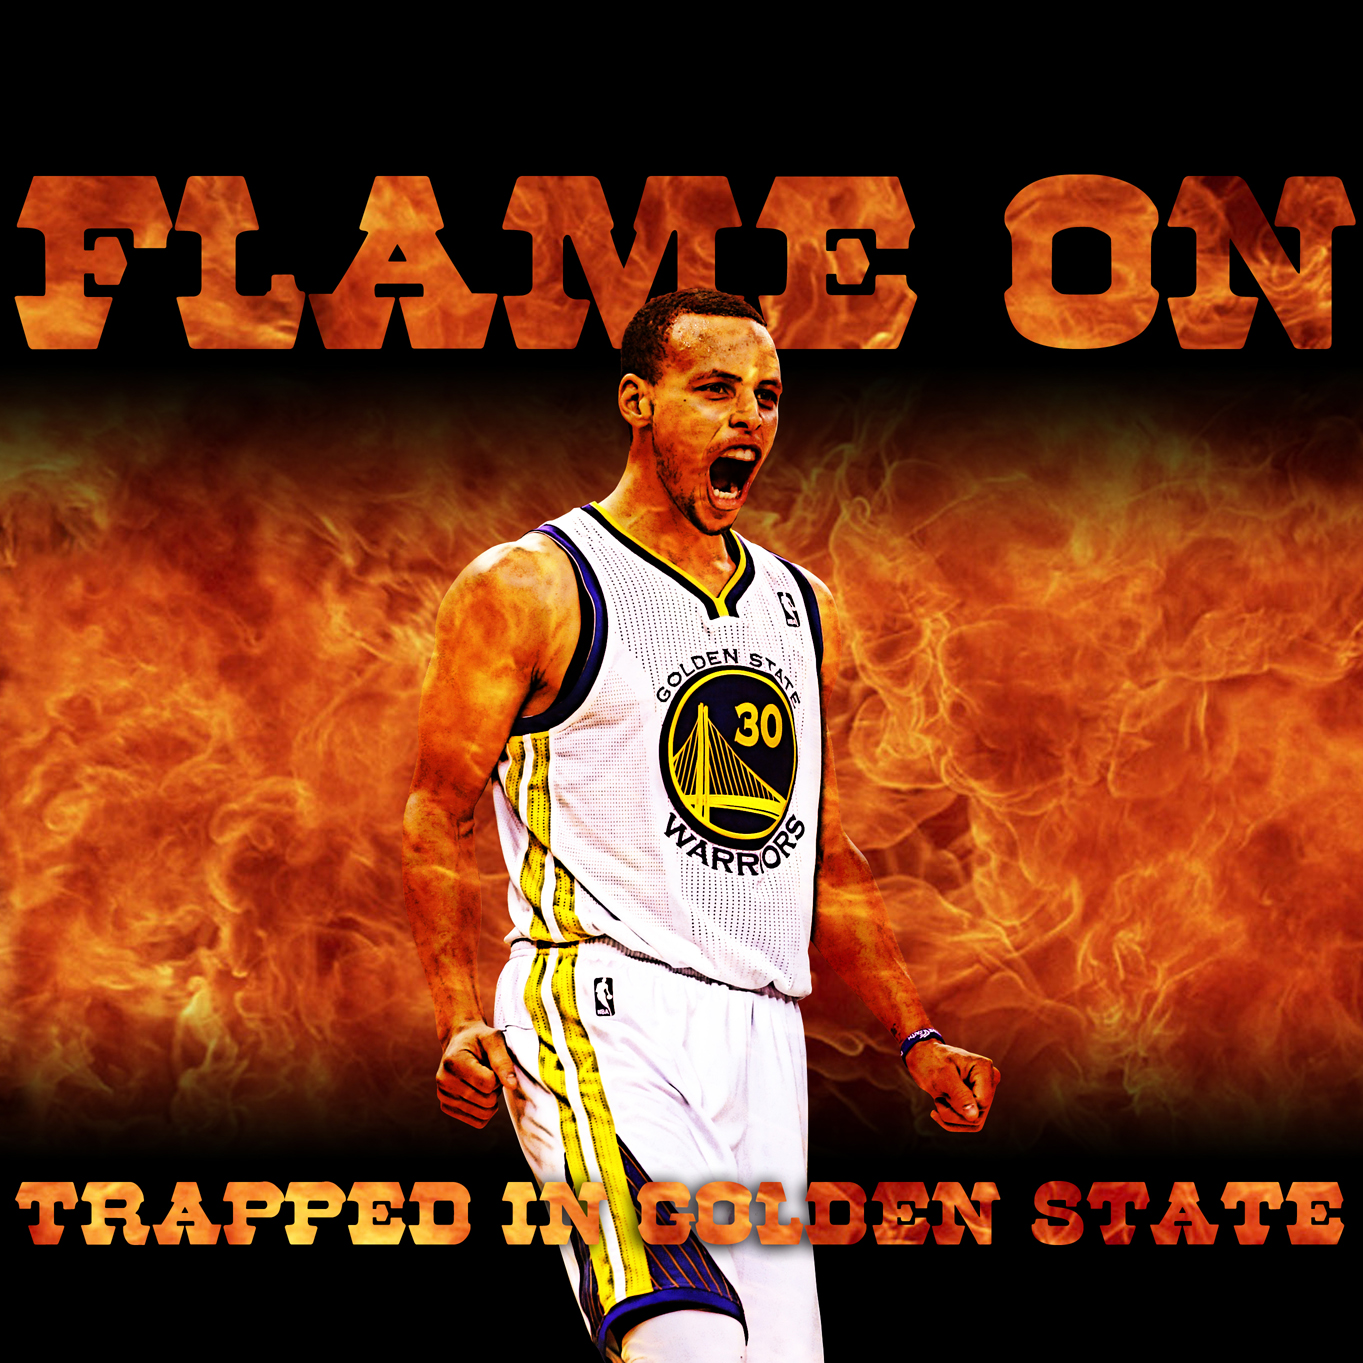 Warriors Fire And Ice Episode 3: Stephen Curry On Fire Wallpaper